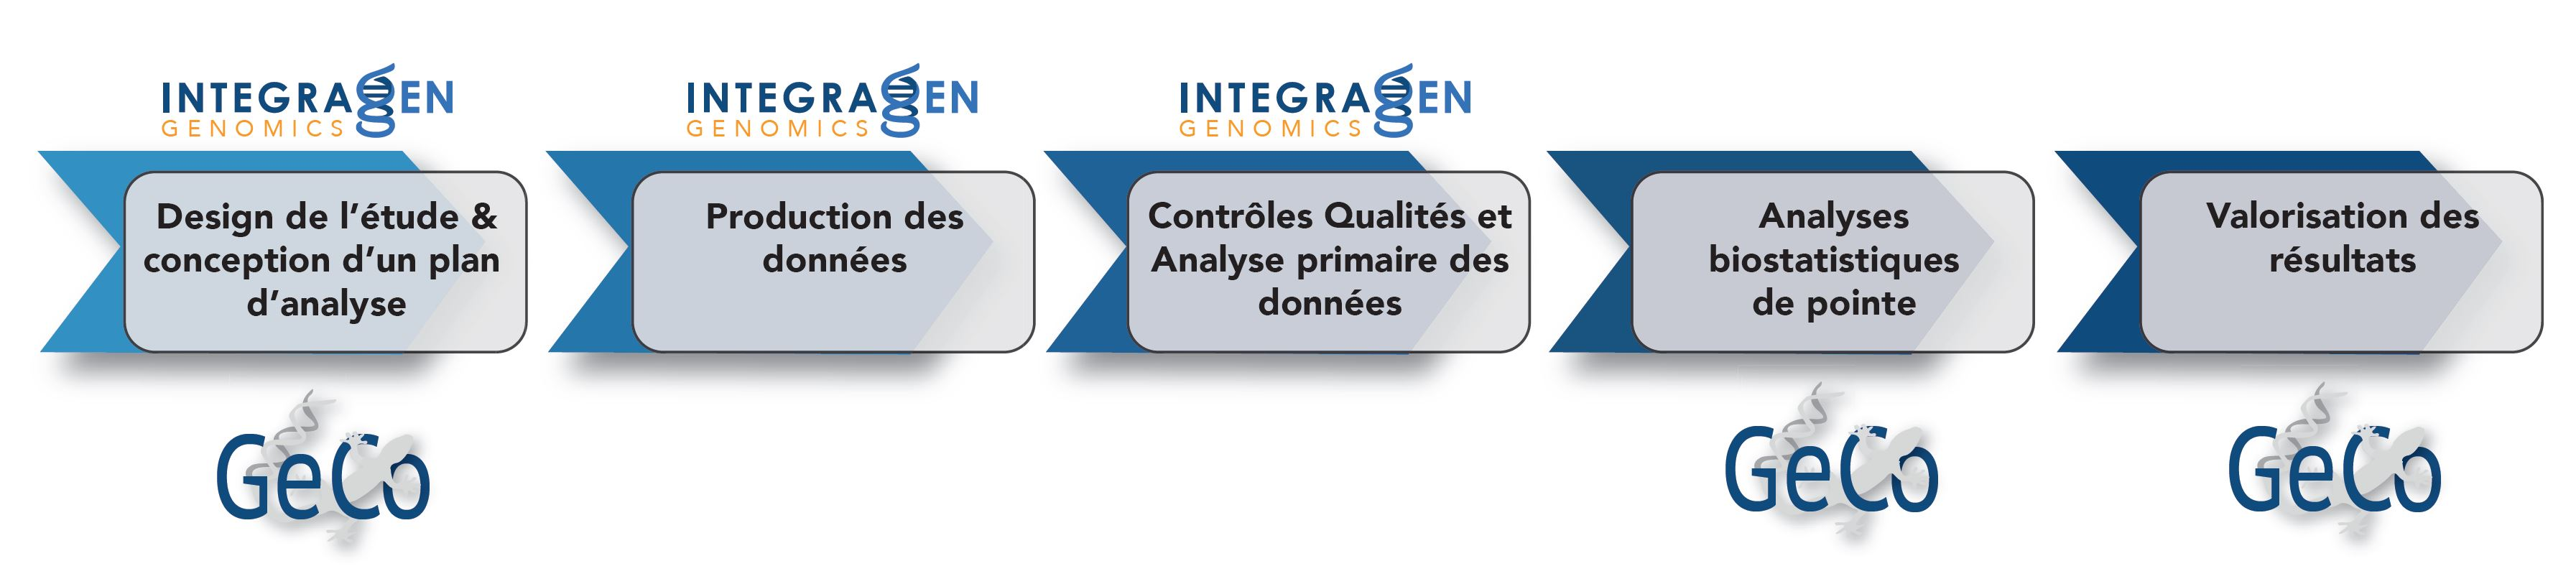 GeCo Genomics project plan and results (French2)